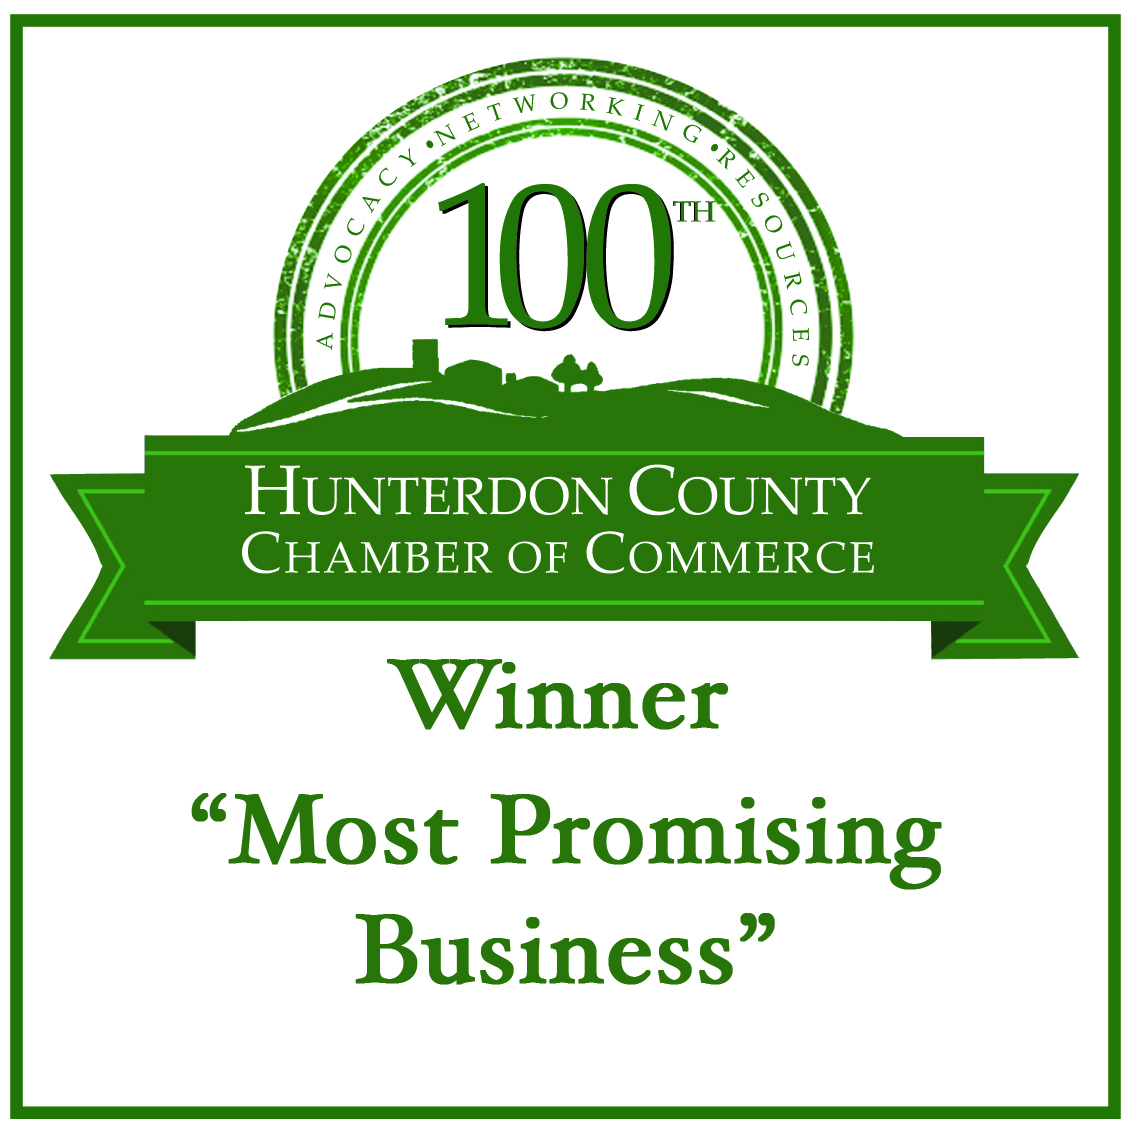 Hunterdon County Chamber of Commerce Most Promising Business